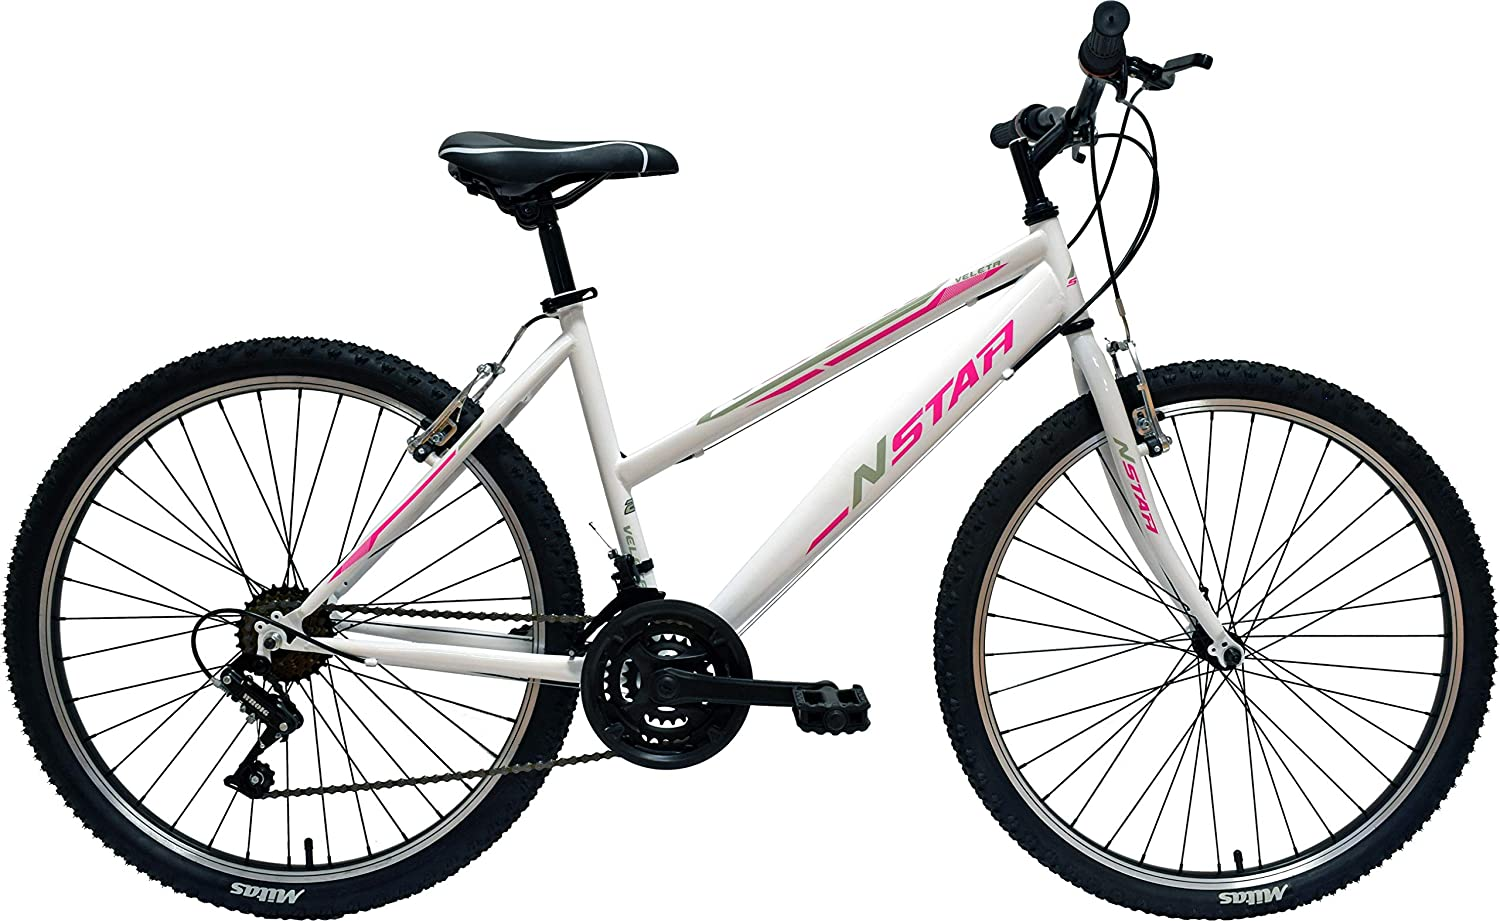 New Star - Bicicleta BTT 26